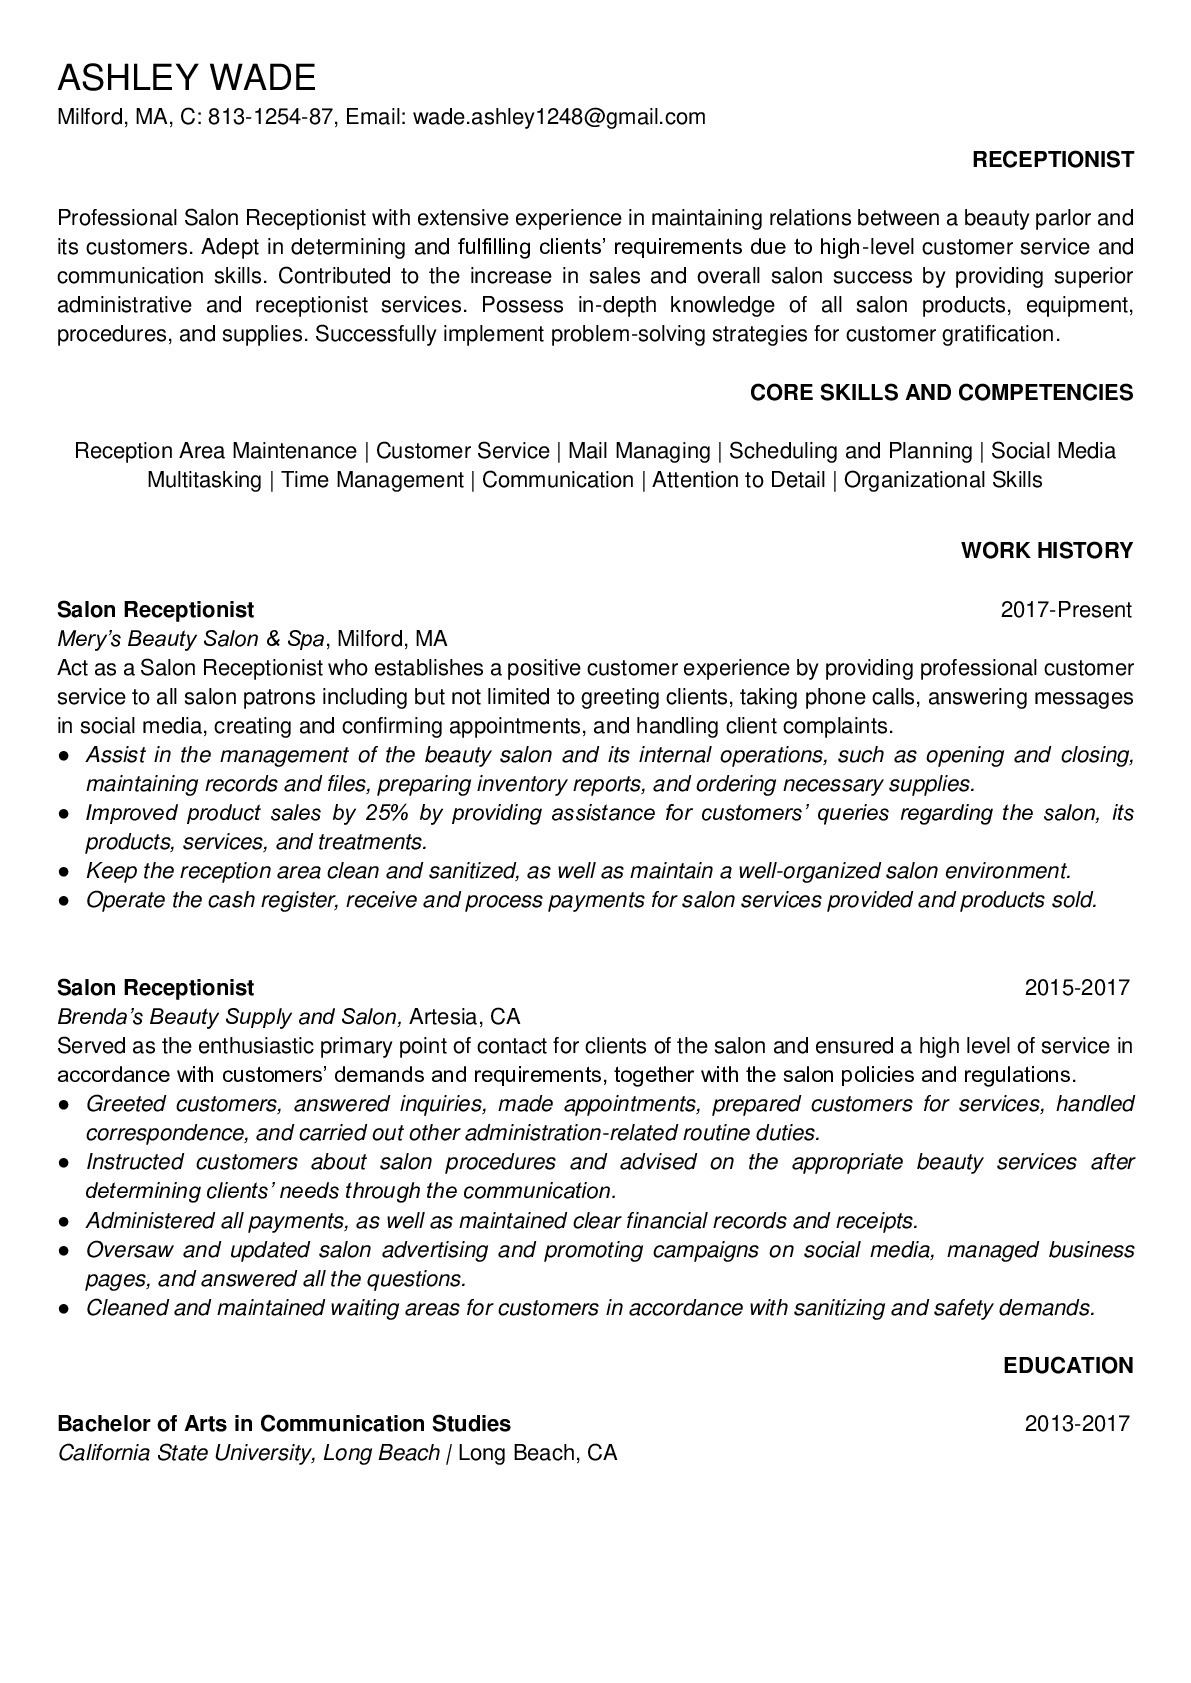 Resume for Salon Receptionist